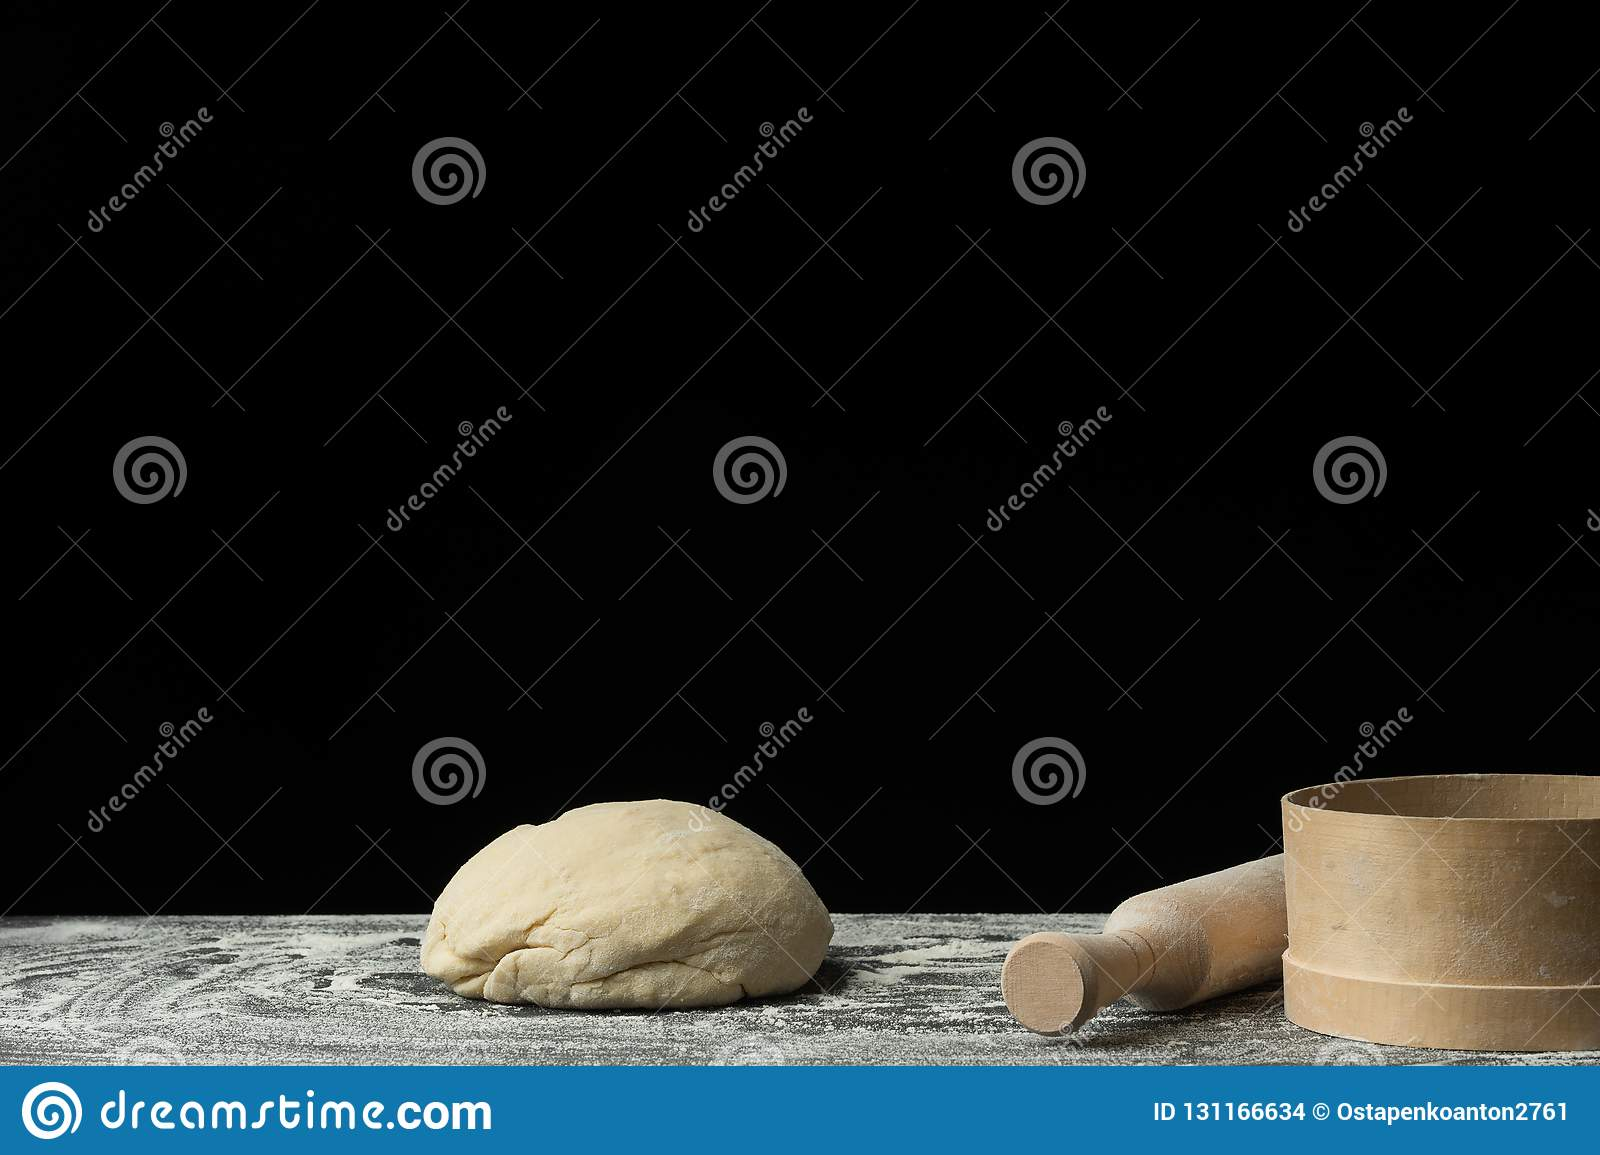 The process of making bread, pasta, sweets or Italian pizza on the village table. Pizza dough